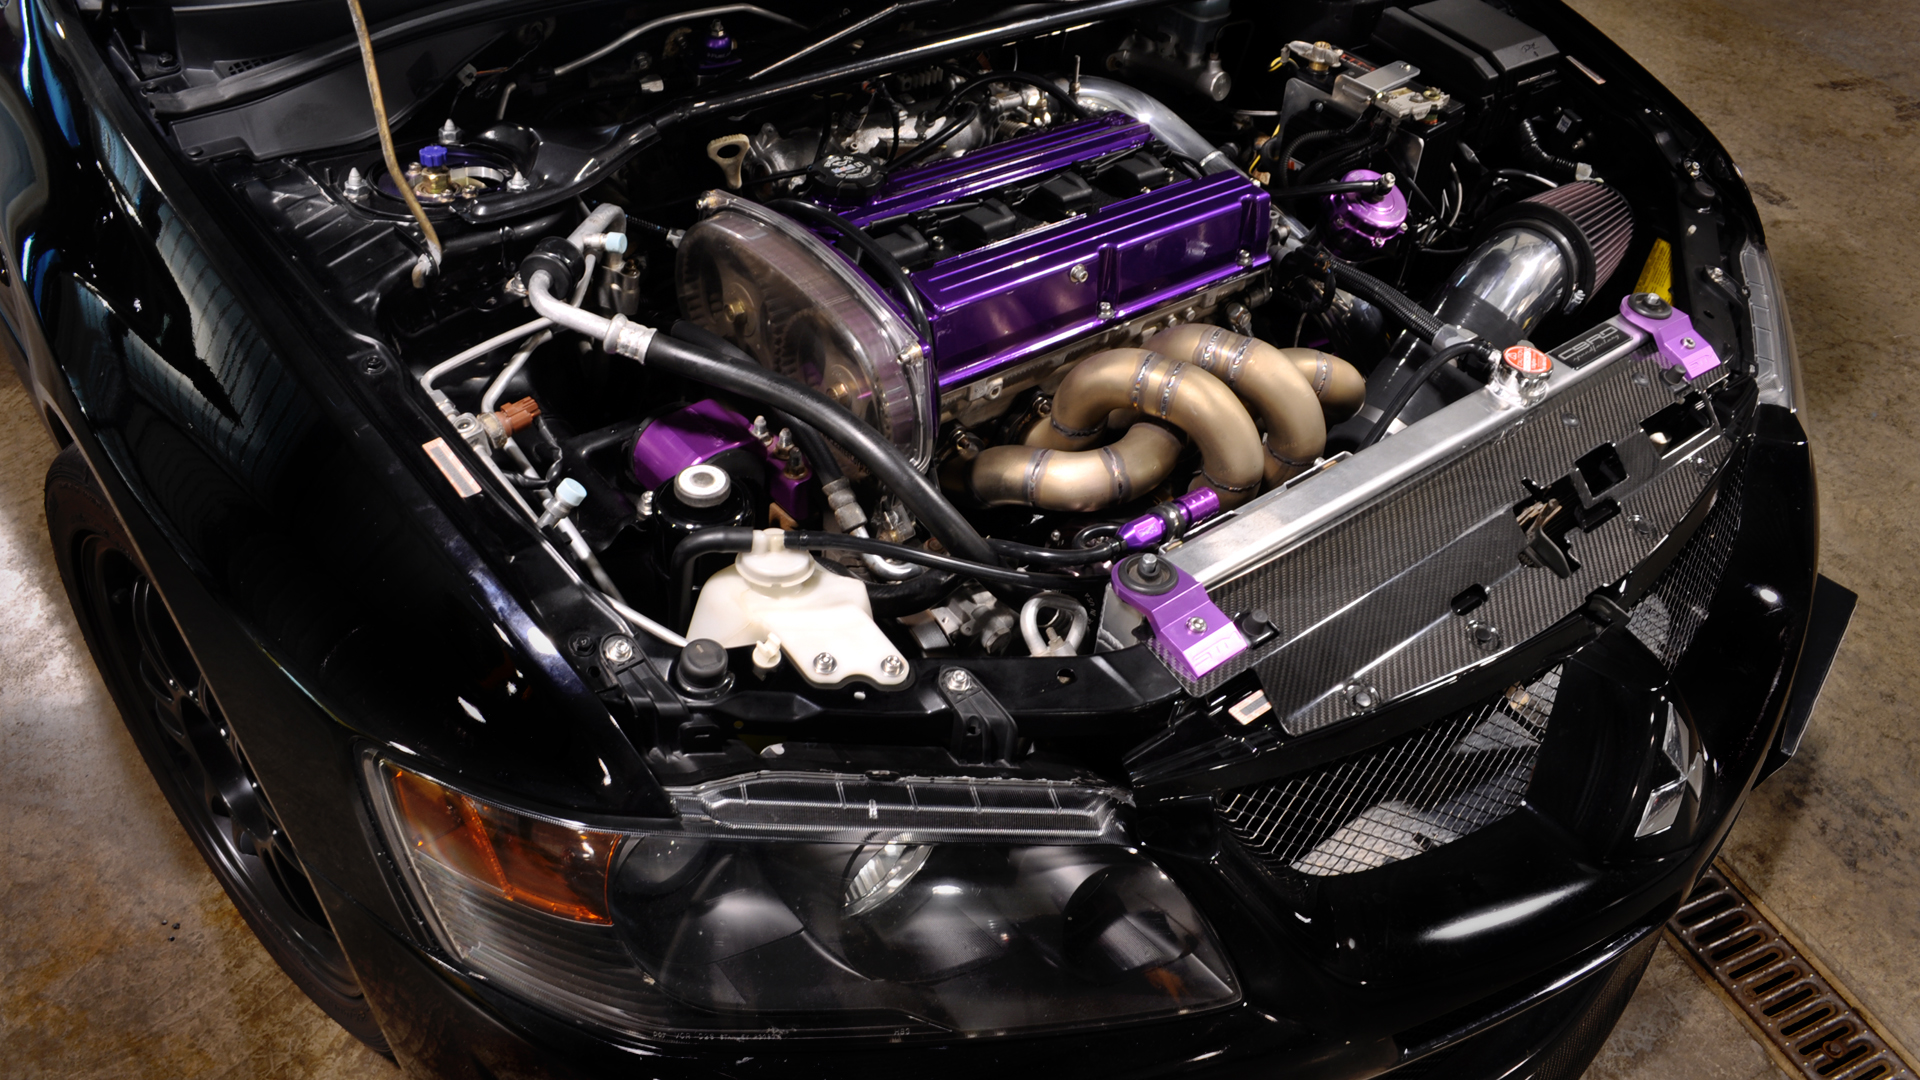 4g63girl S Stm Tuned 35r Purple Black Evo Viii Page 10